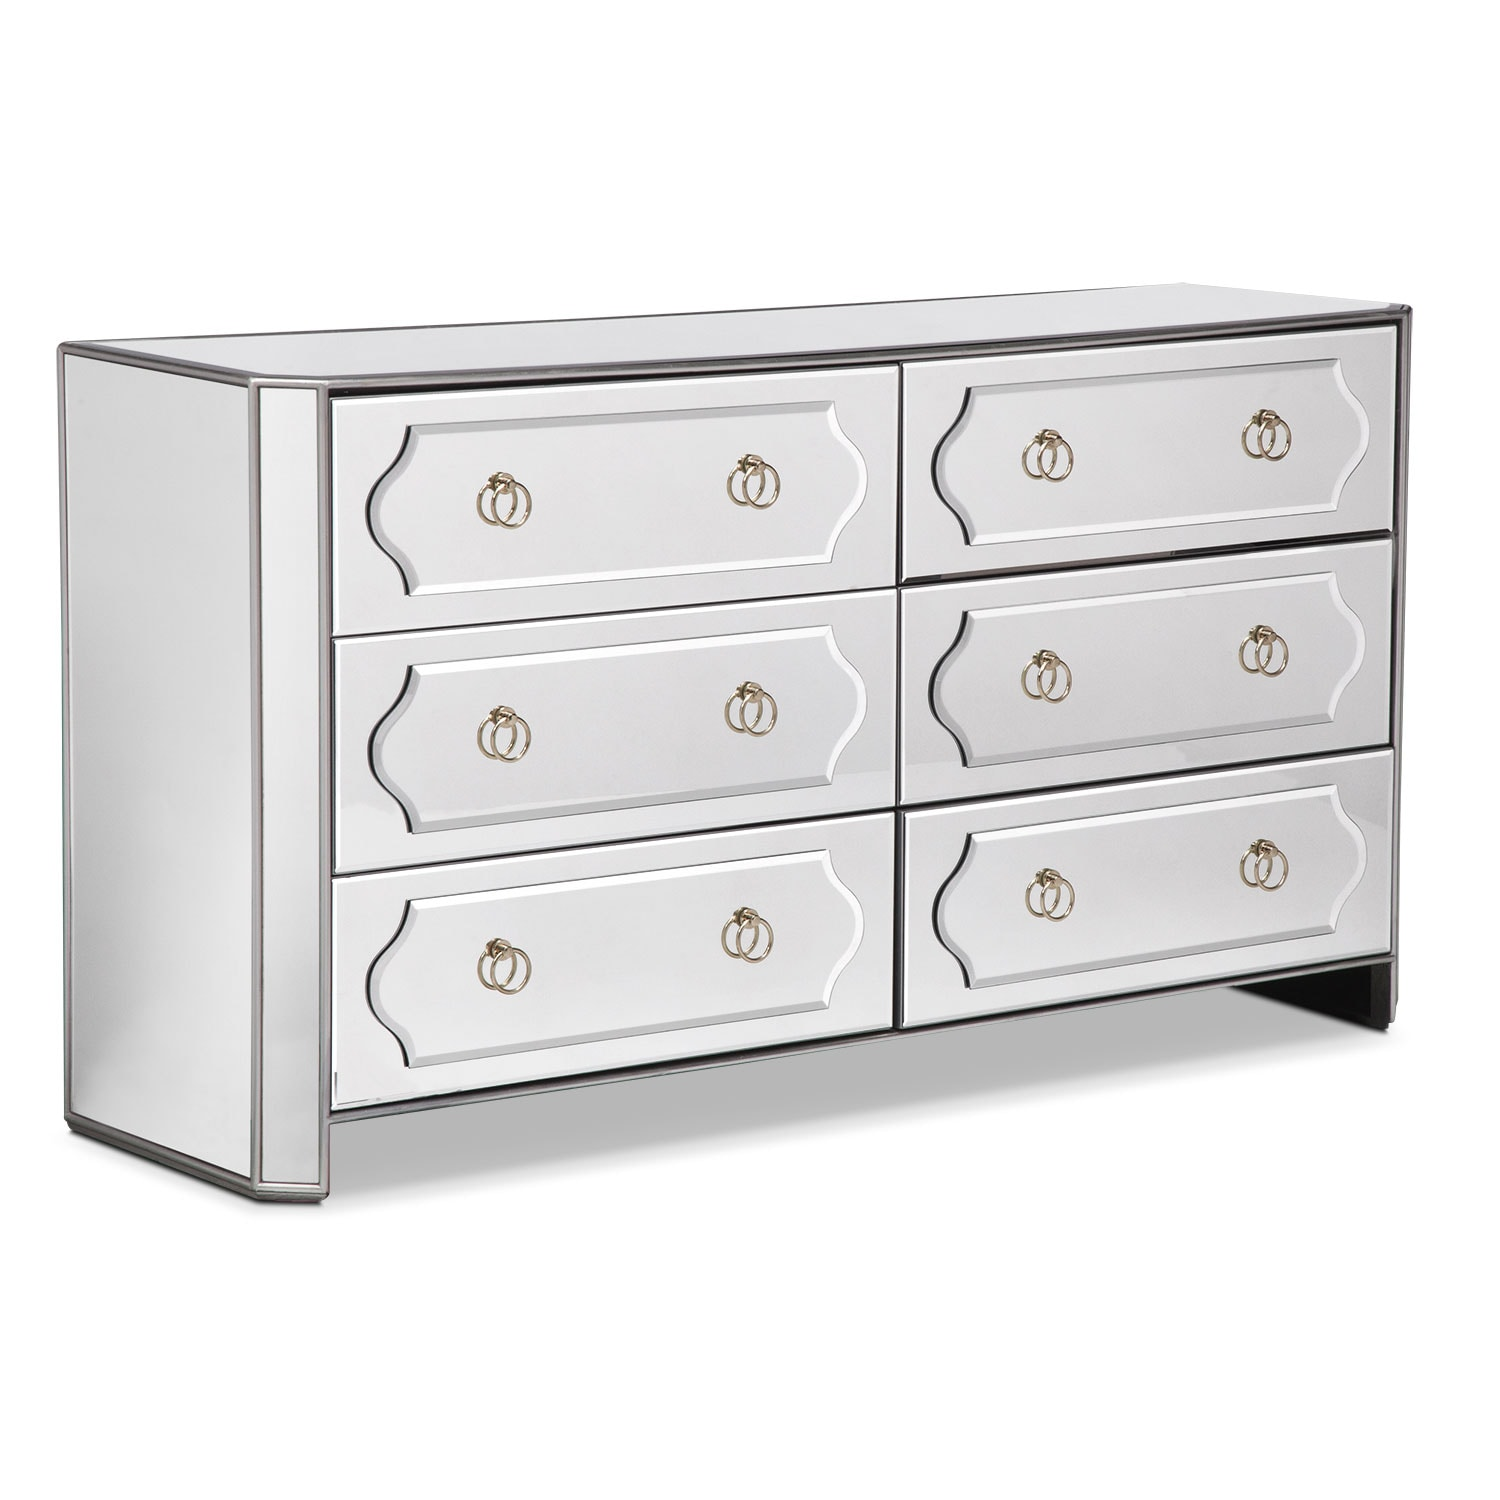 Bedroom Furniture - Harlow Dresser - Mirrored